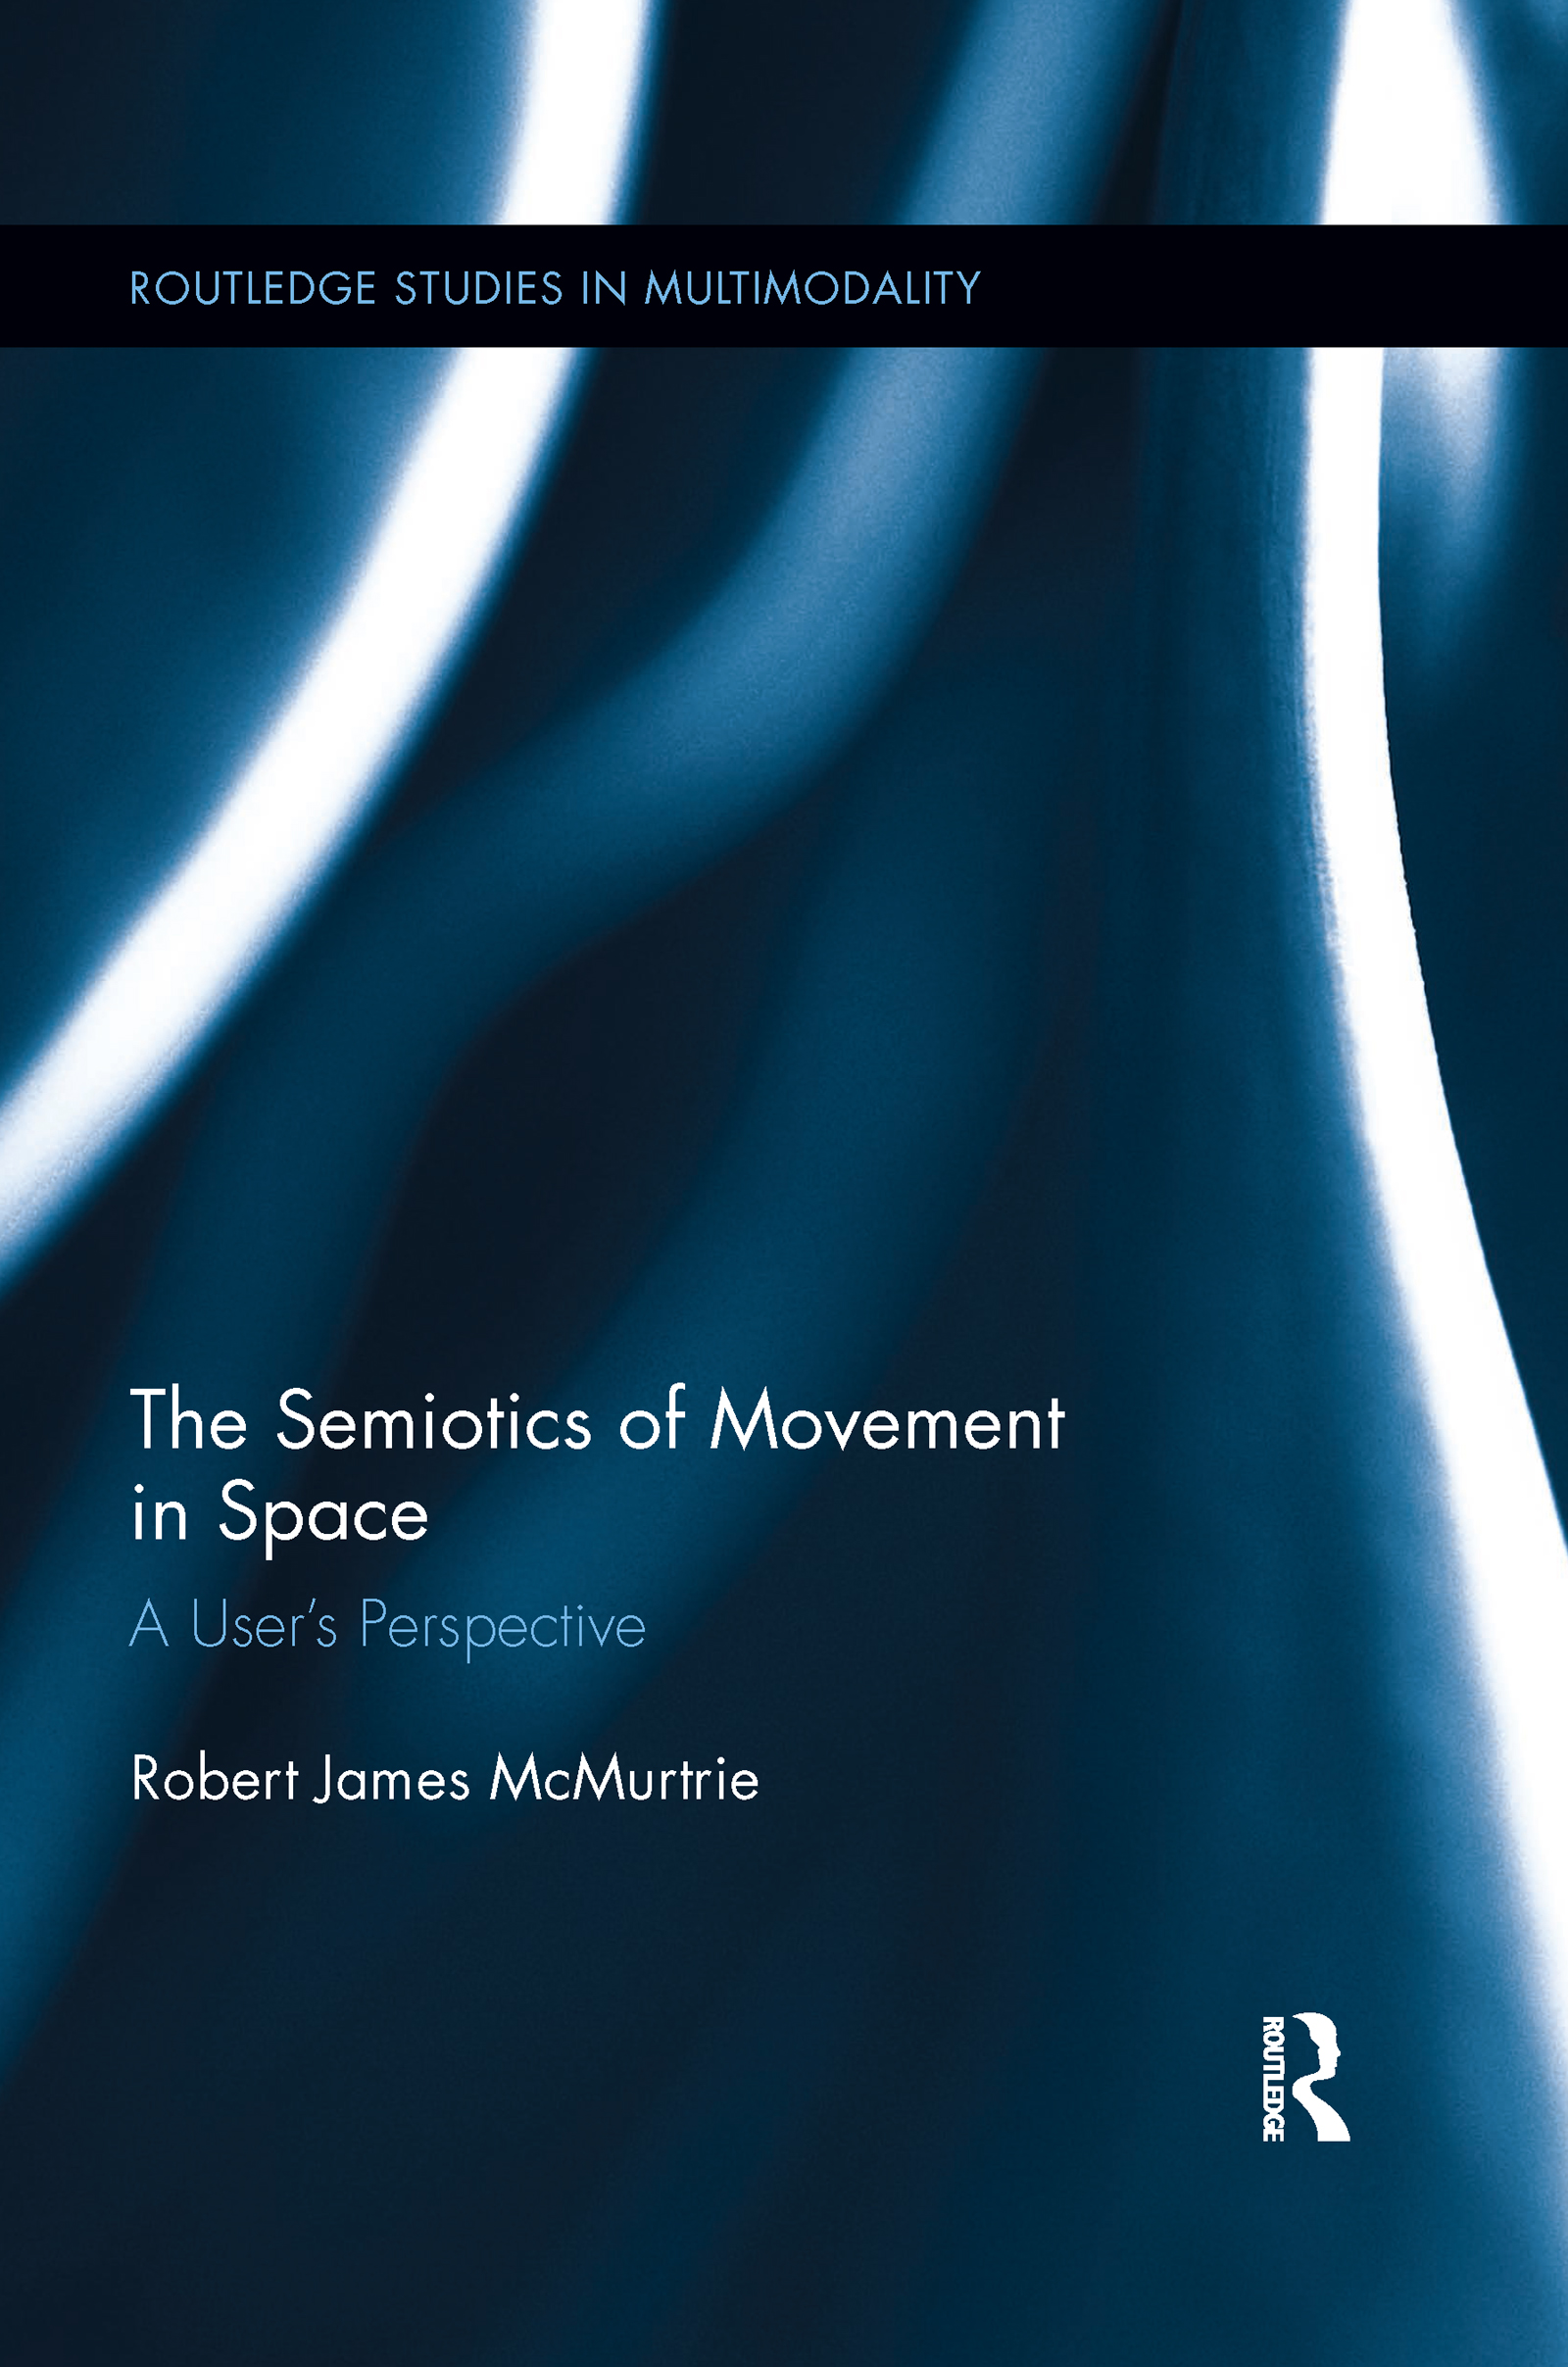 The Semiotics of Movement in Space